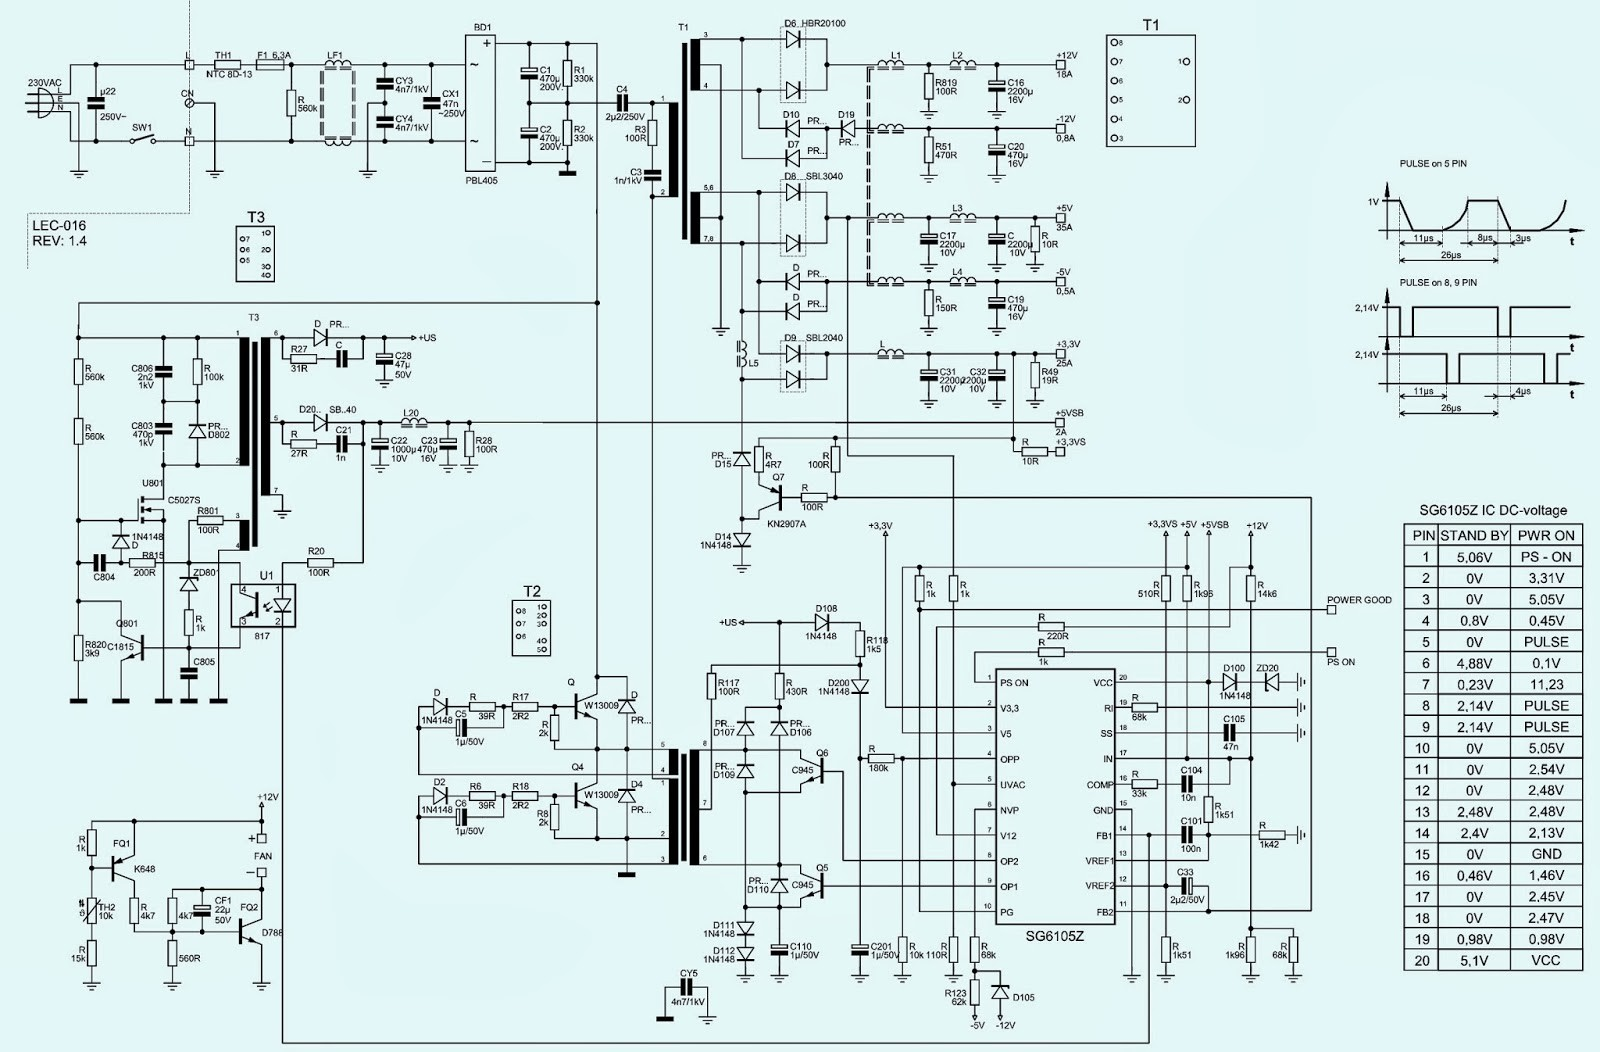 Atx Power Supply Wiring Diagram For Vehicle Application - WIRE Center •